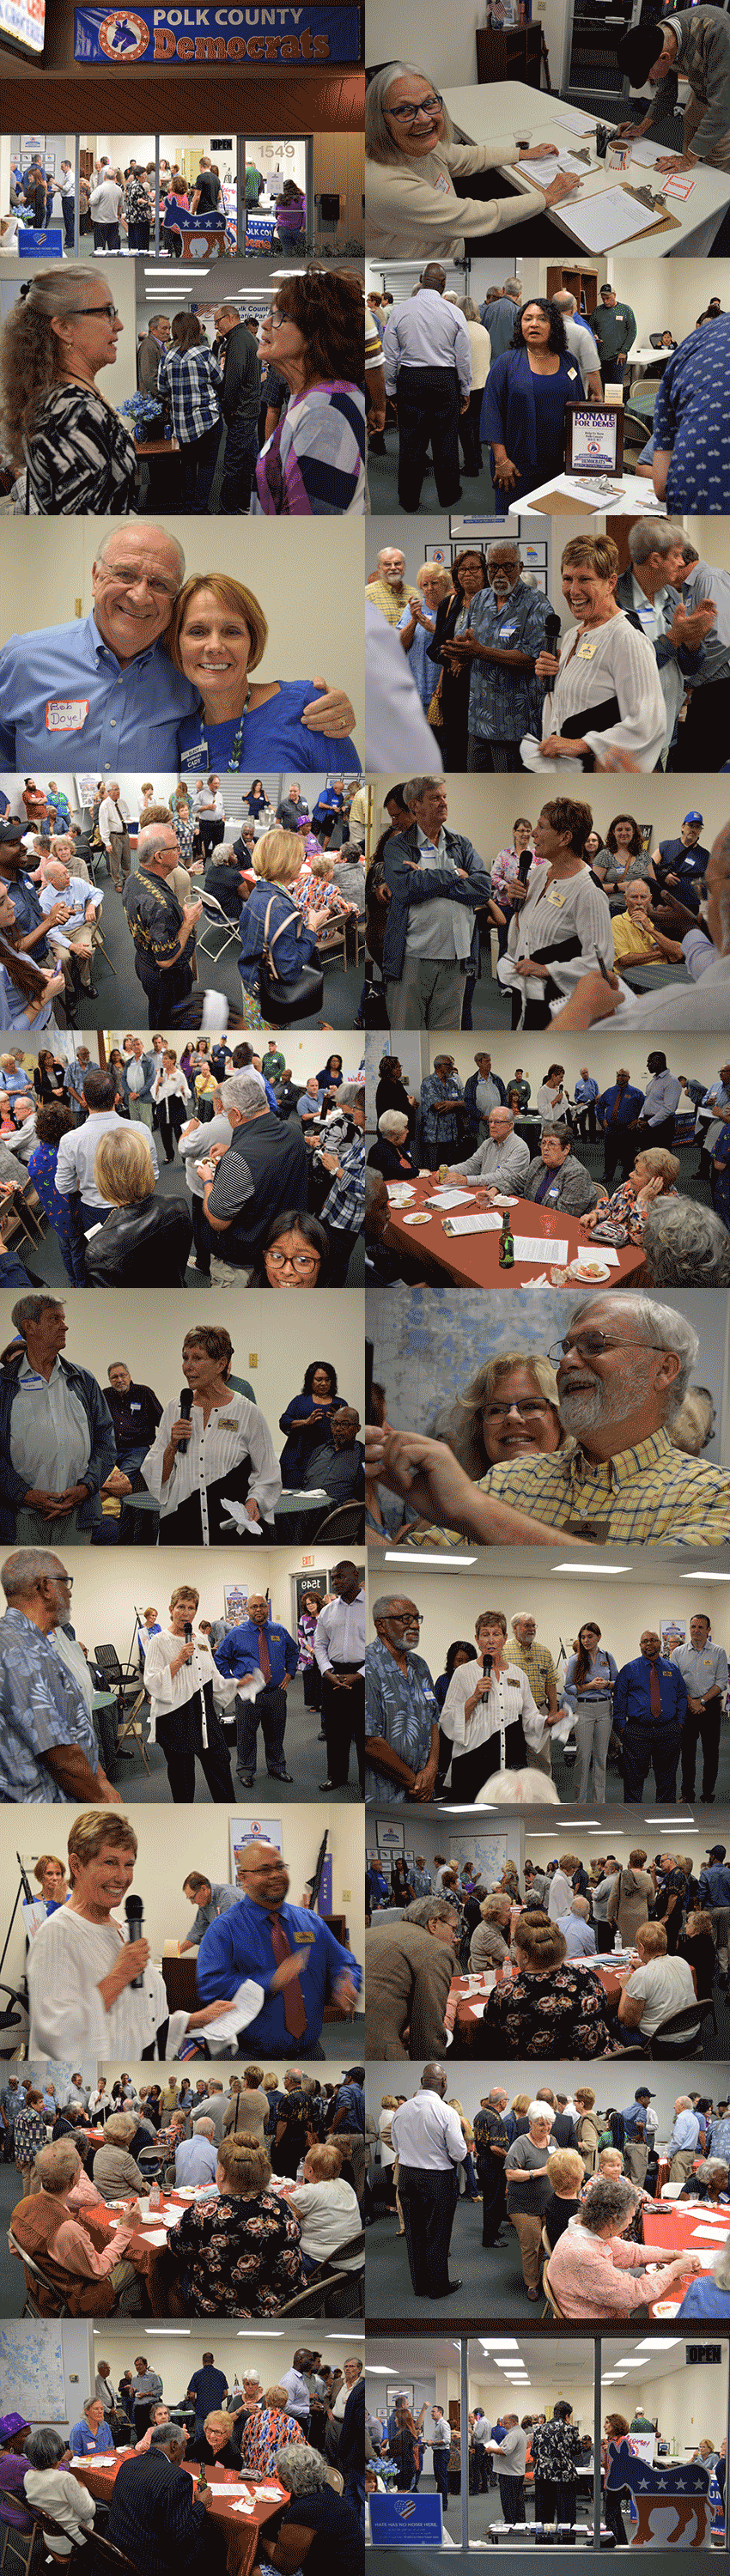 Polk Democrats welcomed more than 100 to our new office in Lakeland, FL.